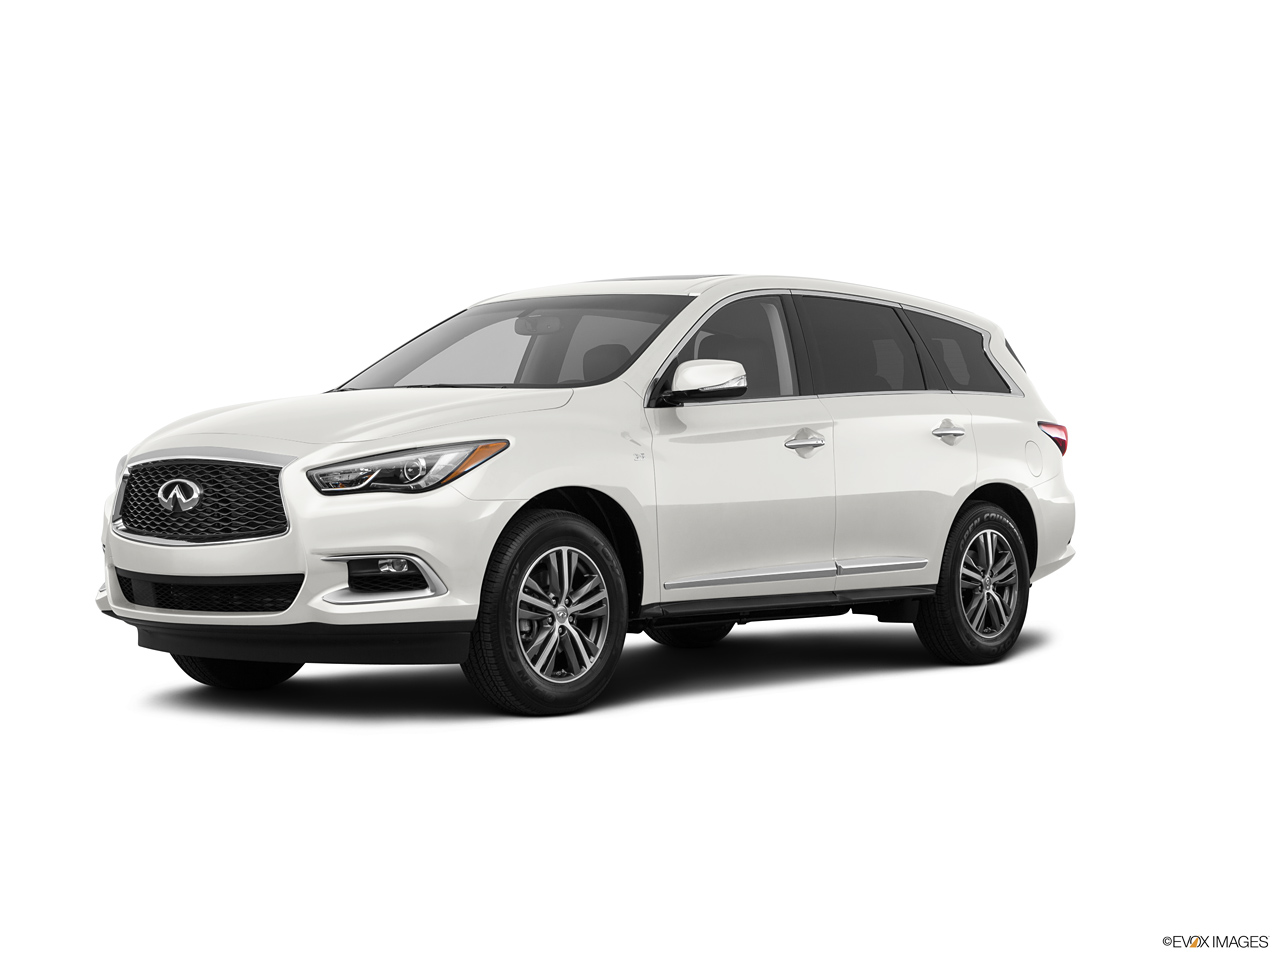 infiniti qx60 2016 3 5l premium in kuwait new car prices specs reviews photos yallamotor. Black Bedroom Furniture Sets. Home Design Ideas